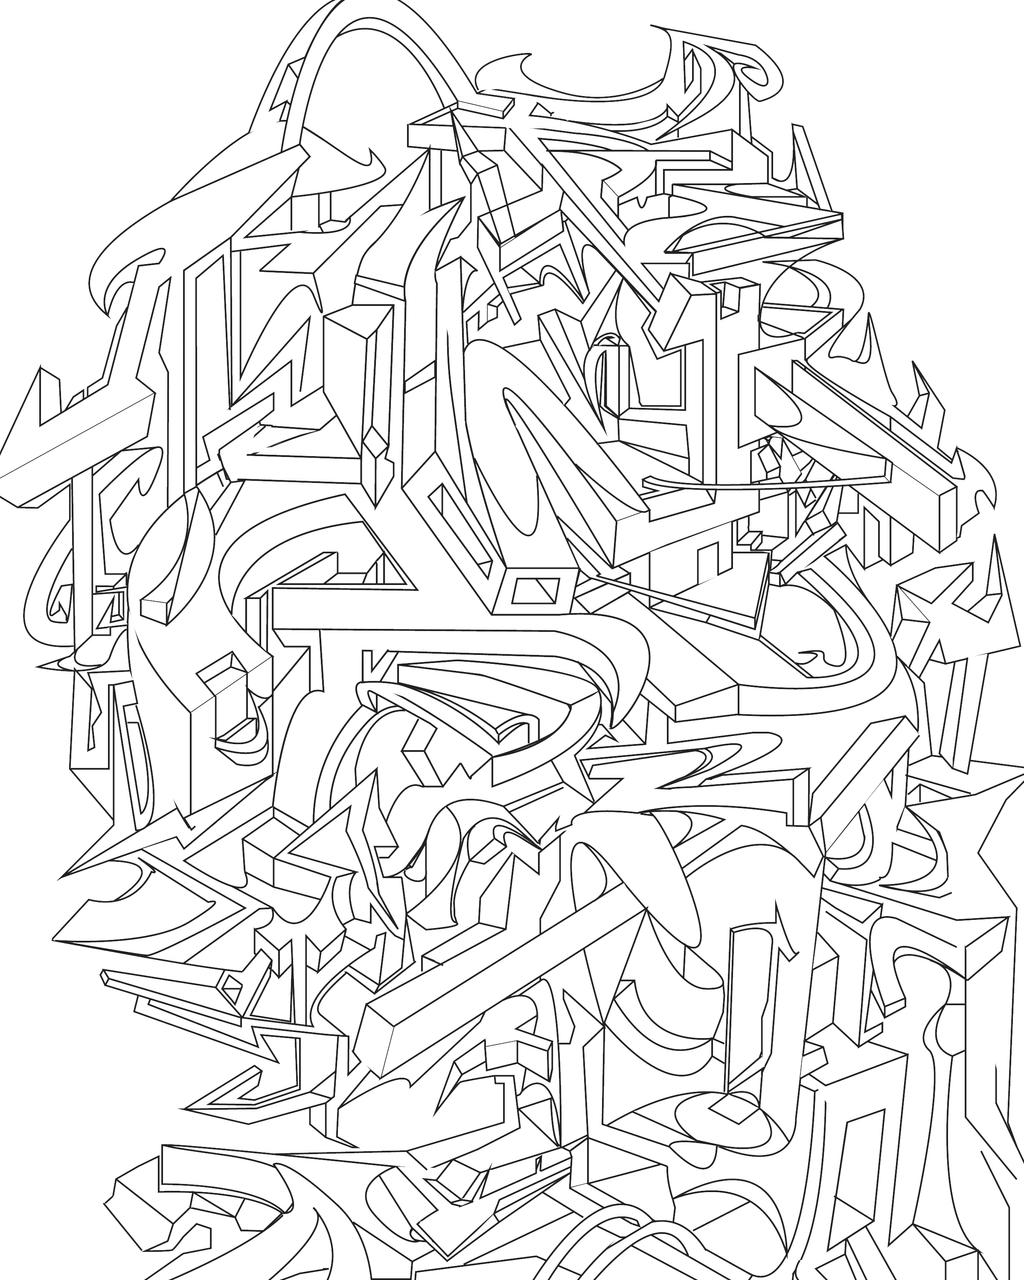 Line Art Design Abstract : Abstract line art by brandon montrone on deviantart